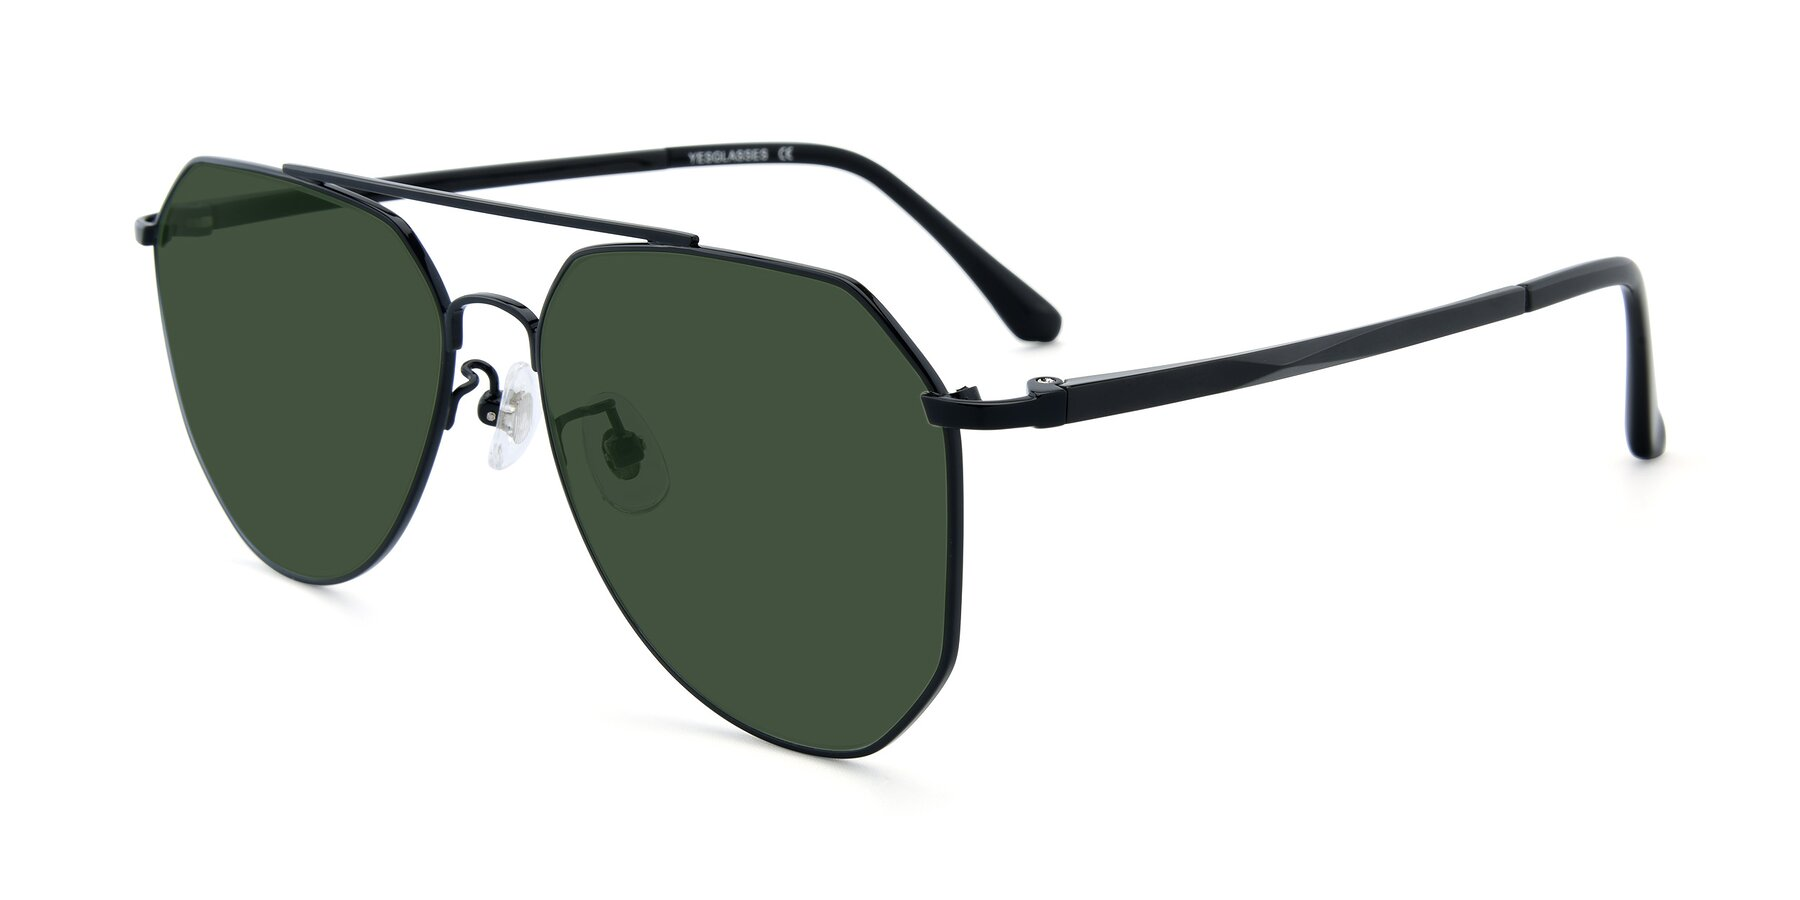 Angle of XC-8040 in Black with Green Tinted Lenses